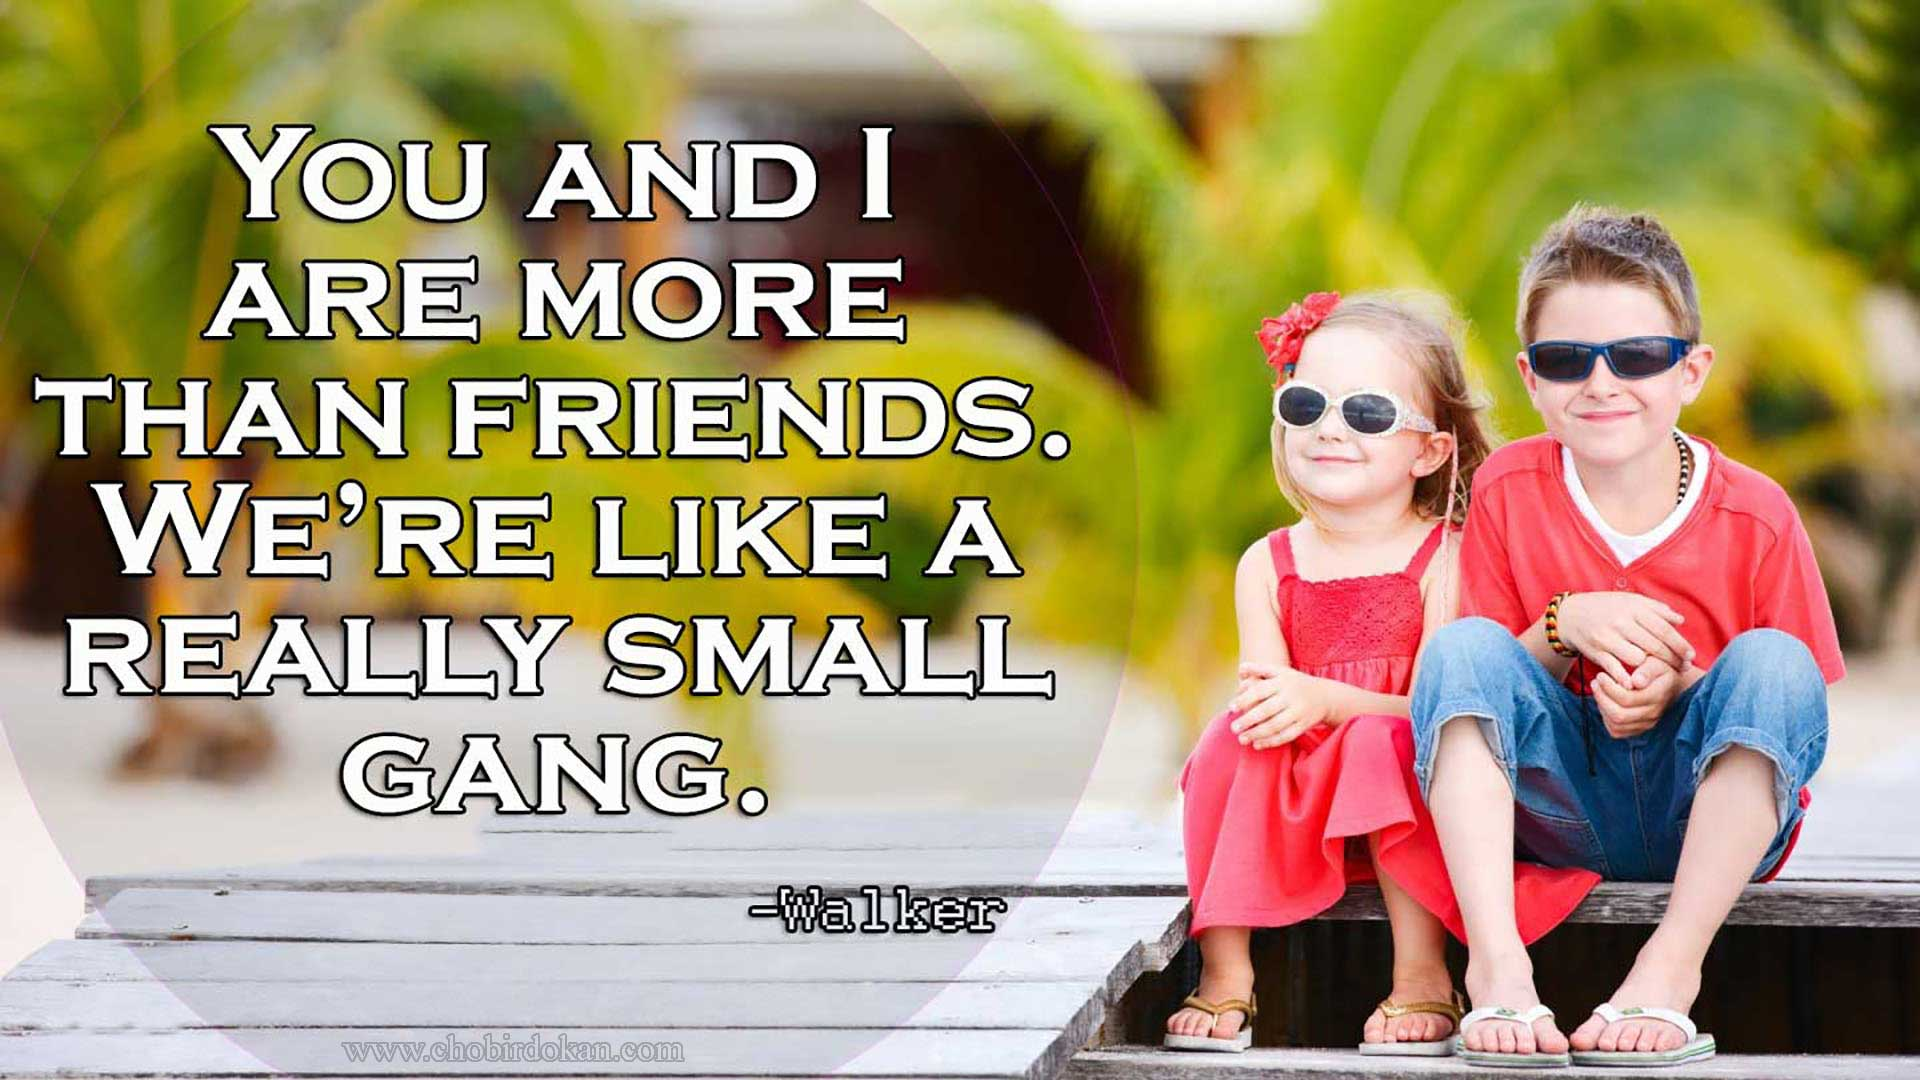 Love And Friendship Desktop Wallpaper : 40+ cute Friendship Quotes With Images Friendship wallpapers -chobirdokan